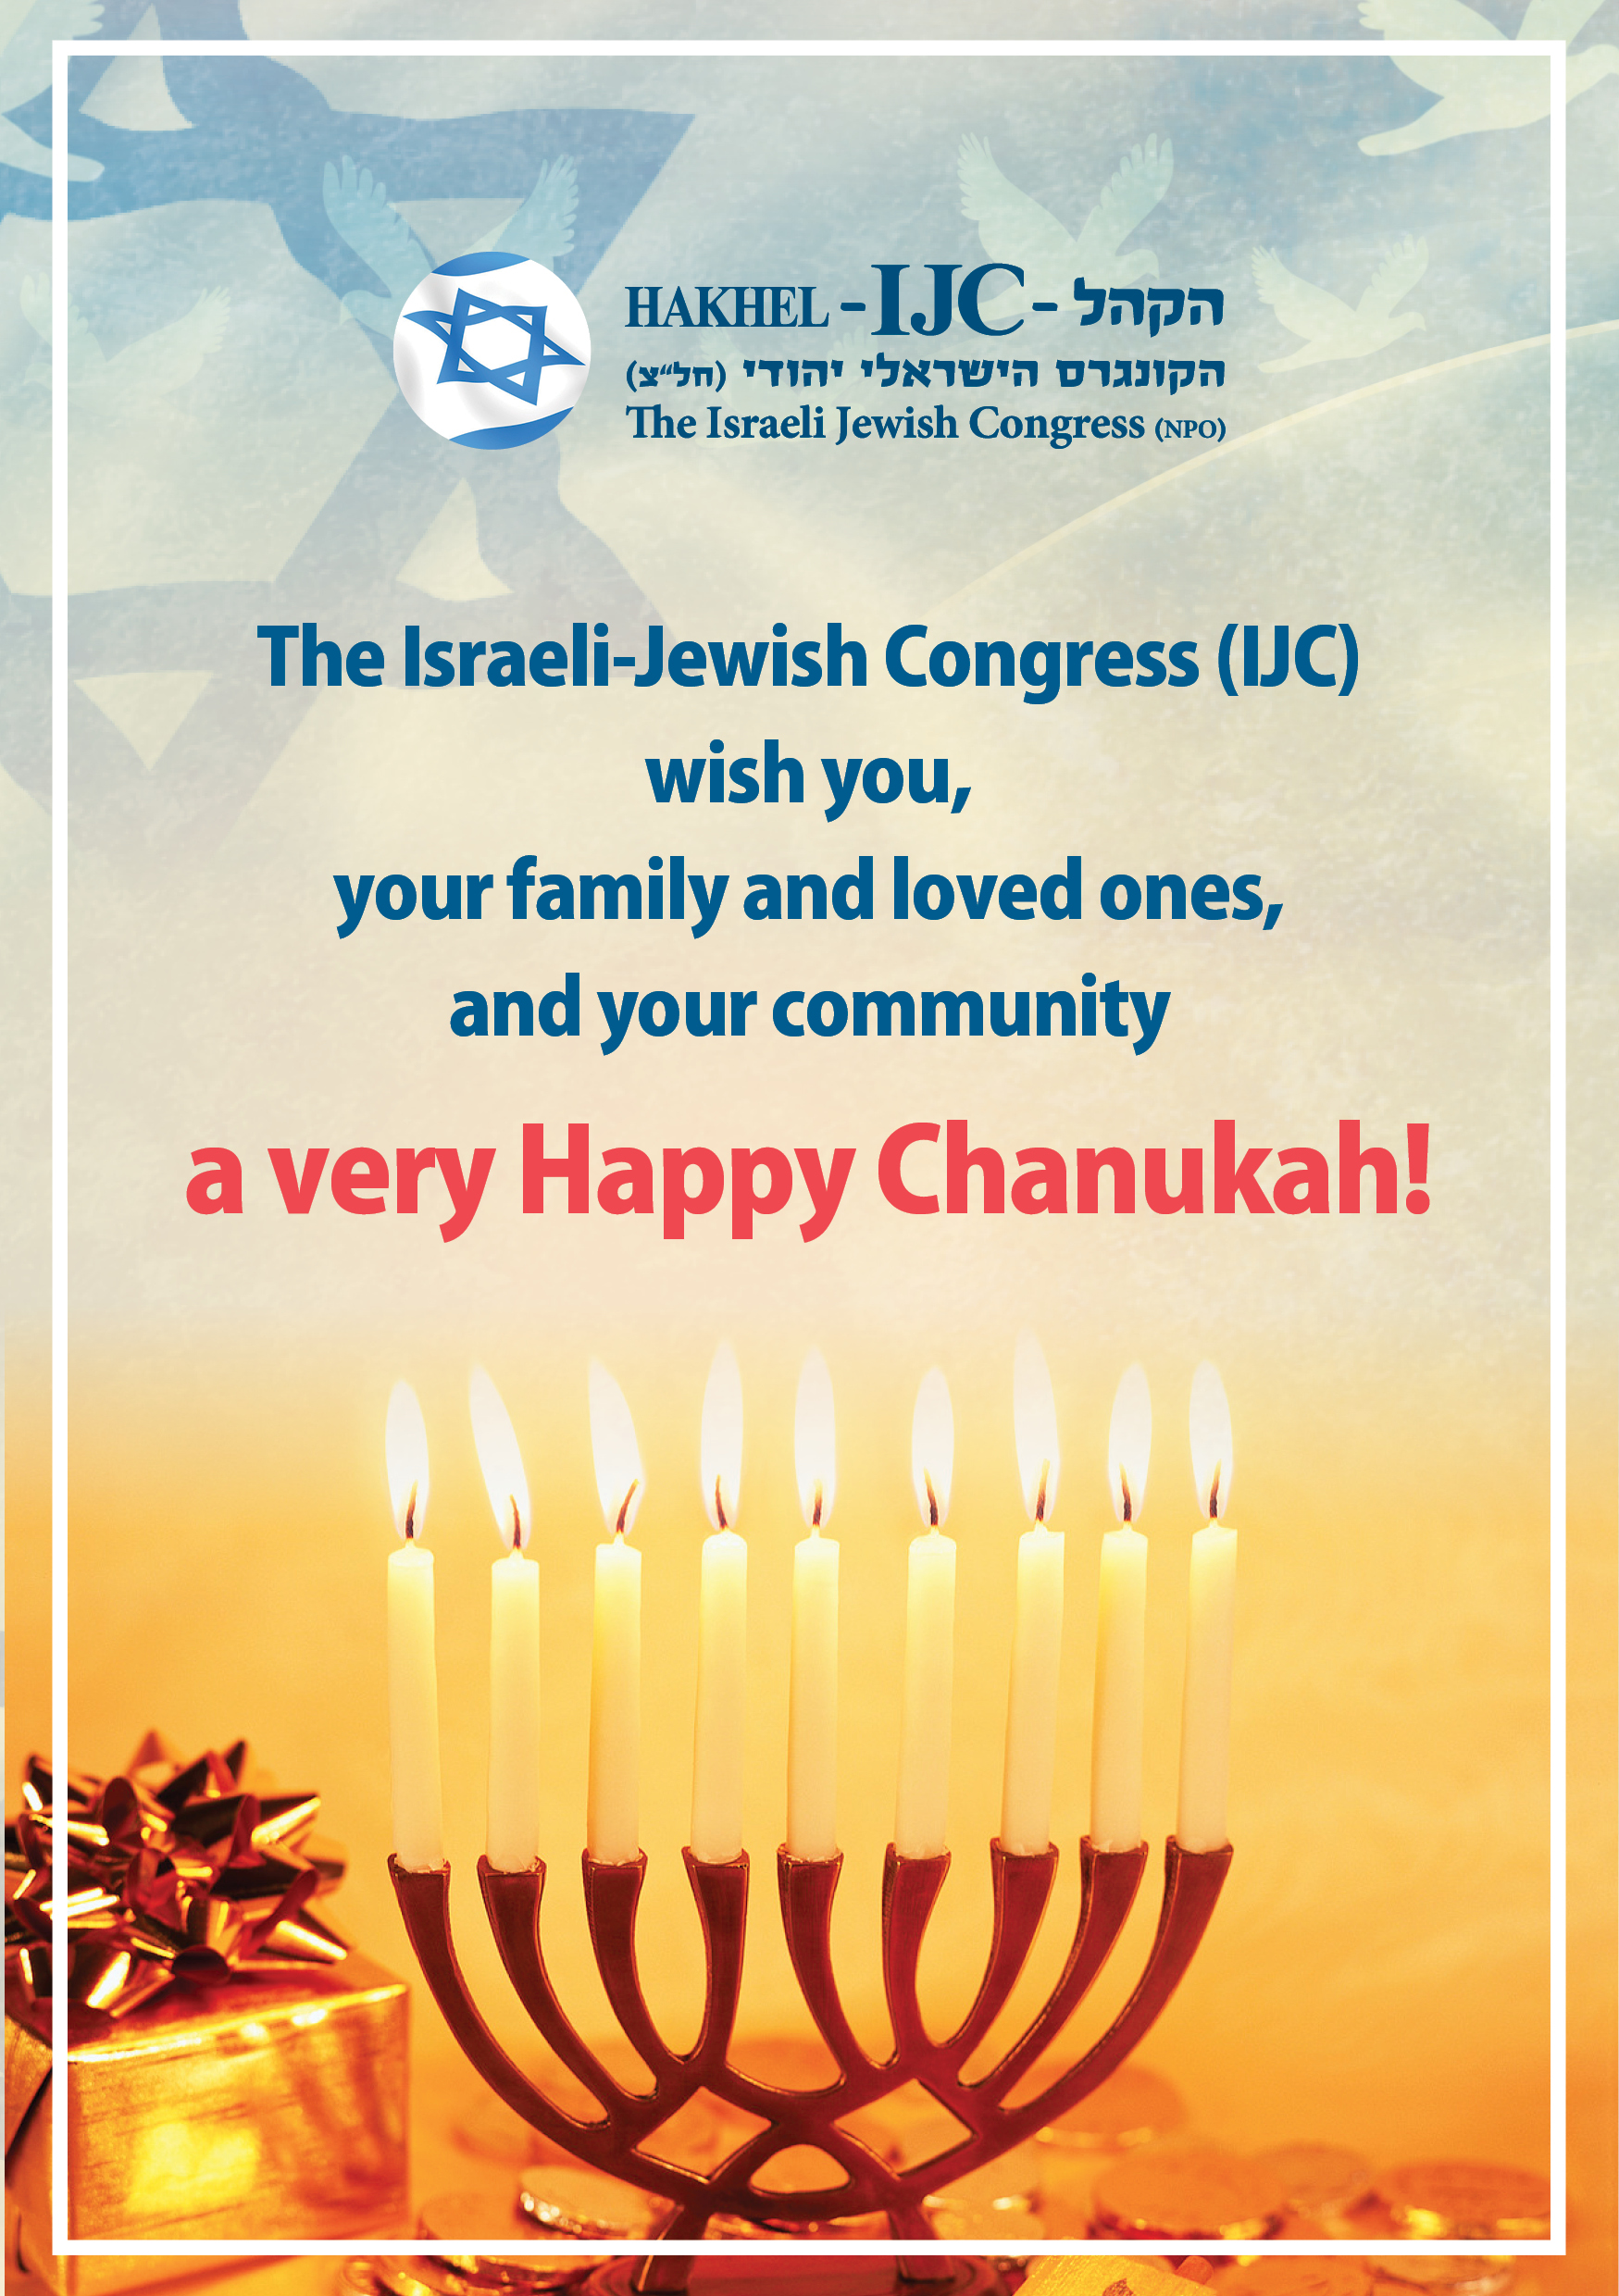 Chanukah Greetings From The Israeli Jewish Congress Ijc The